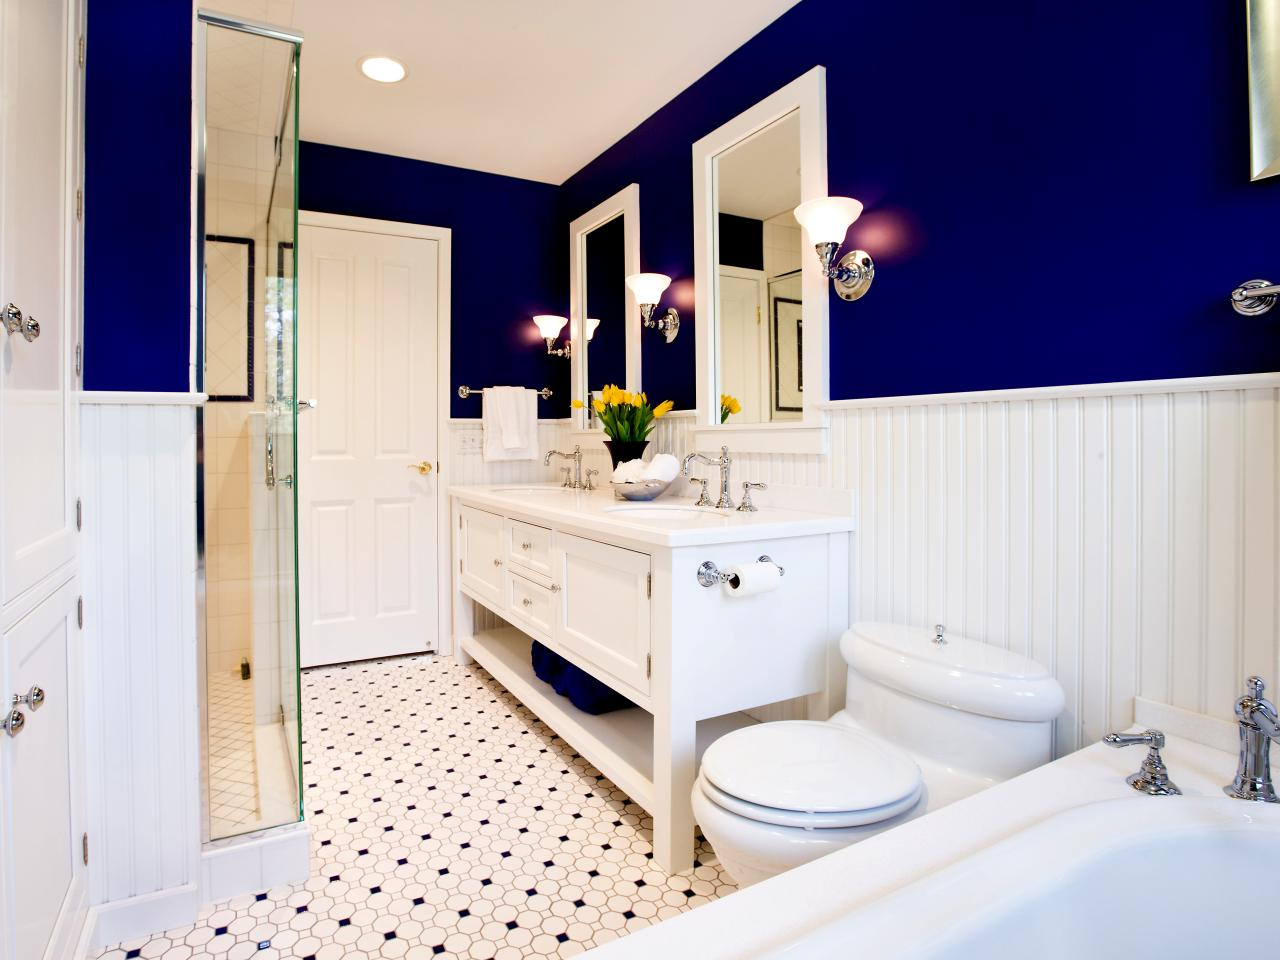 Foolproof Bathroom Color Combos | HGTV on ceiling designs with paint, bathroom remodeling ideas with paint, bathroom makeover with paint,